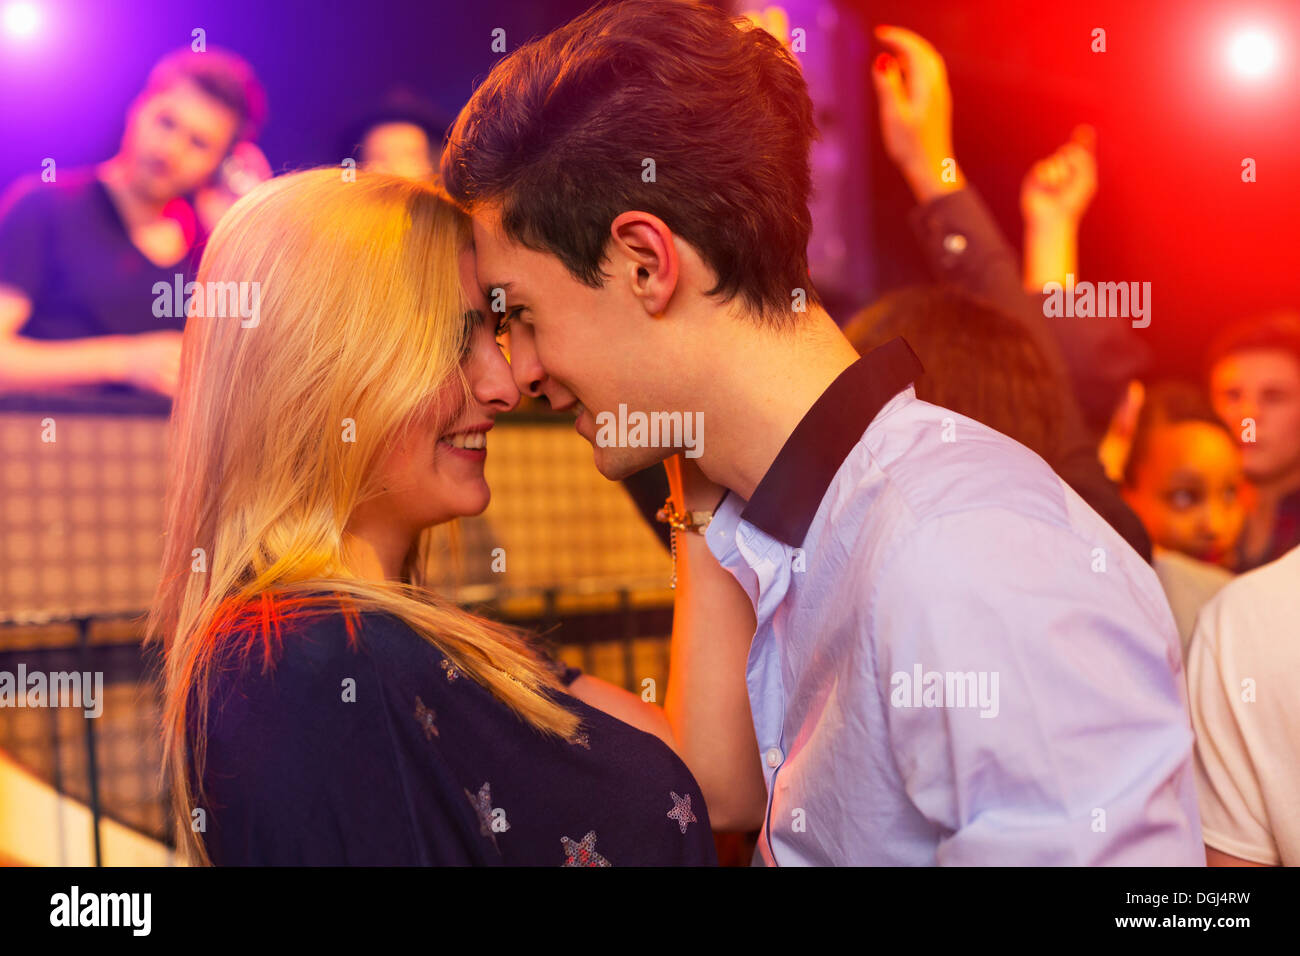 Young couple face to face at party, group behind - Stock Image